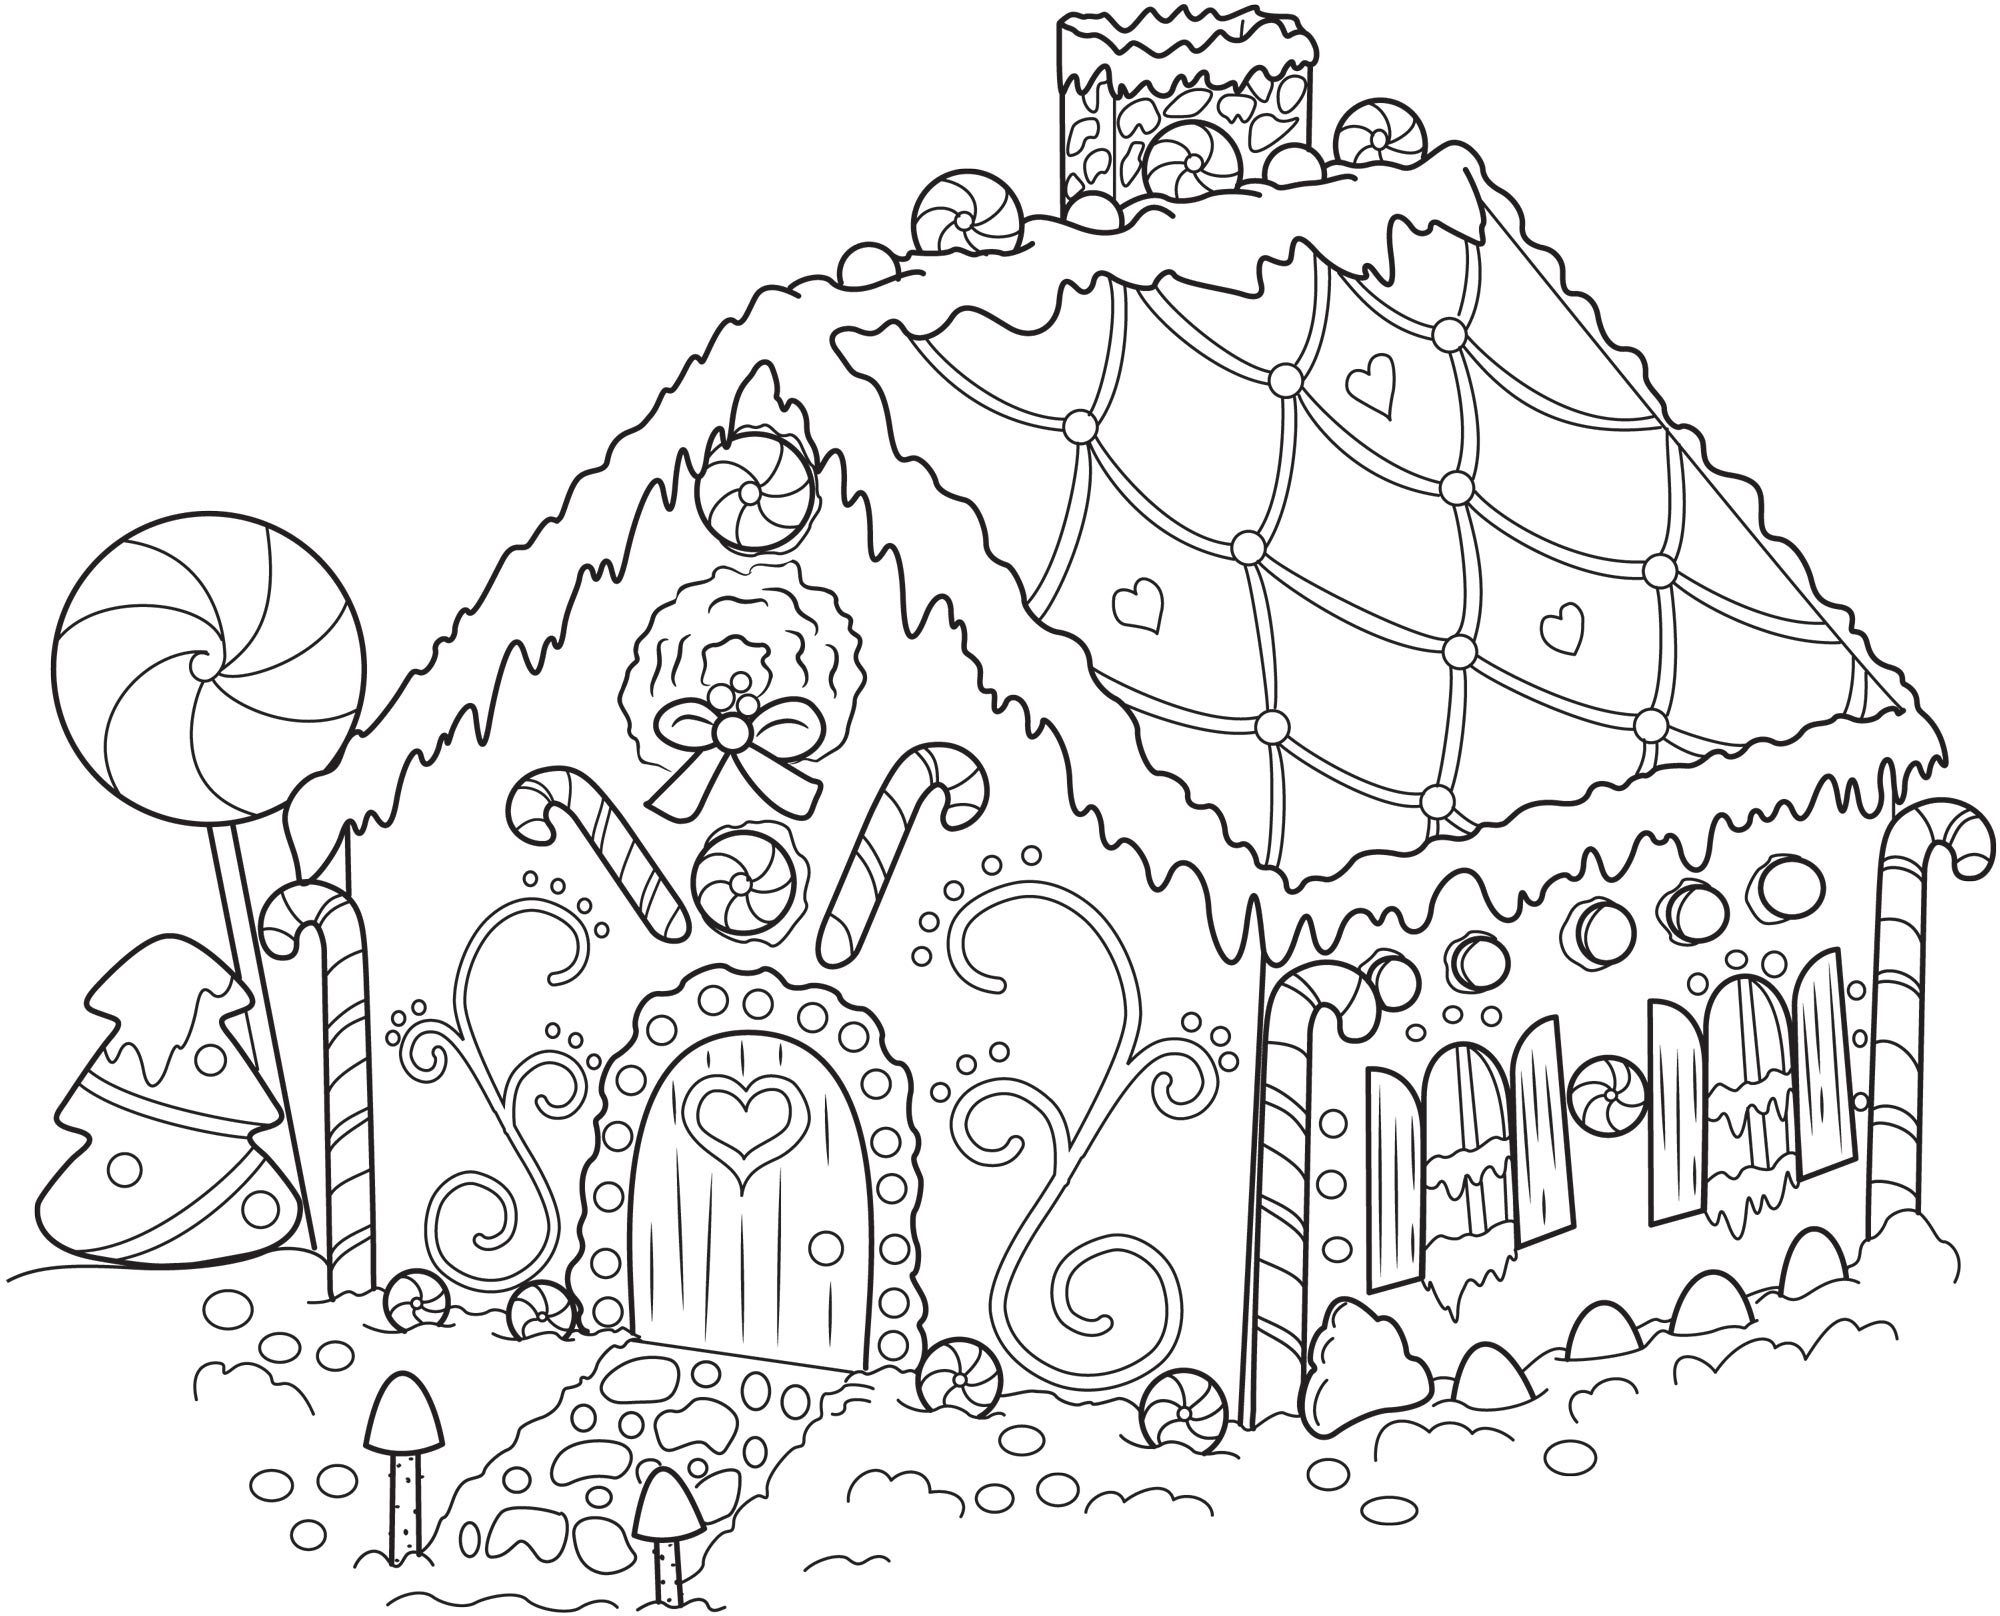 2000x1616 Coloring Pages Of Gingerbread Houses For Little Kids Printable